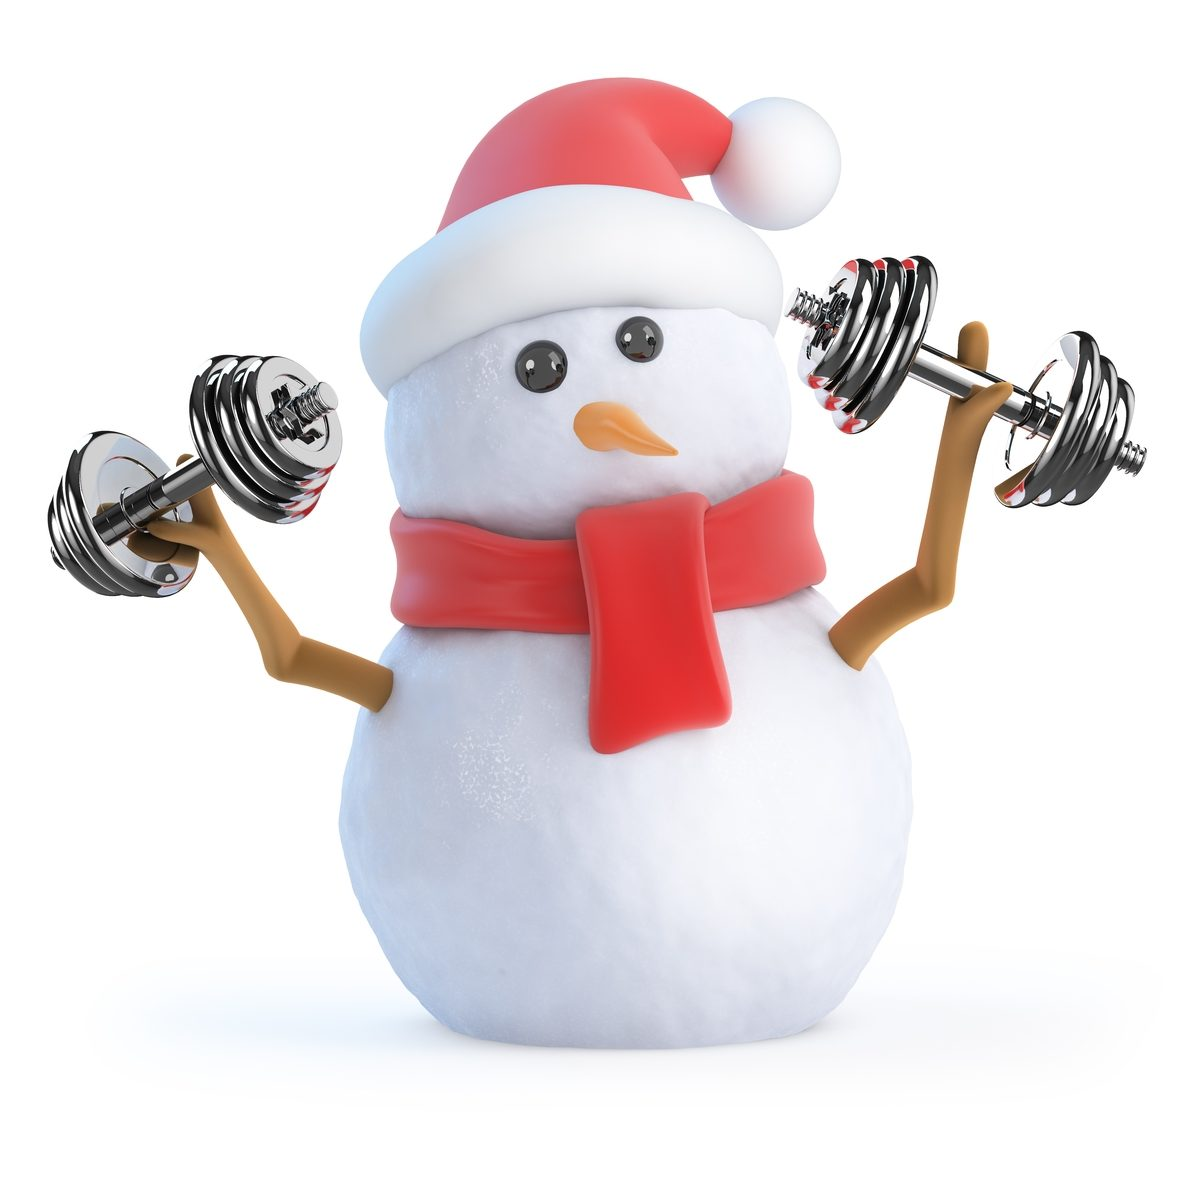 Keep fit not fat this Christmas